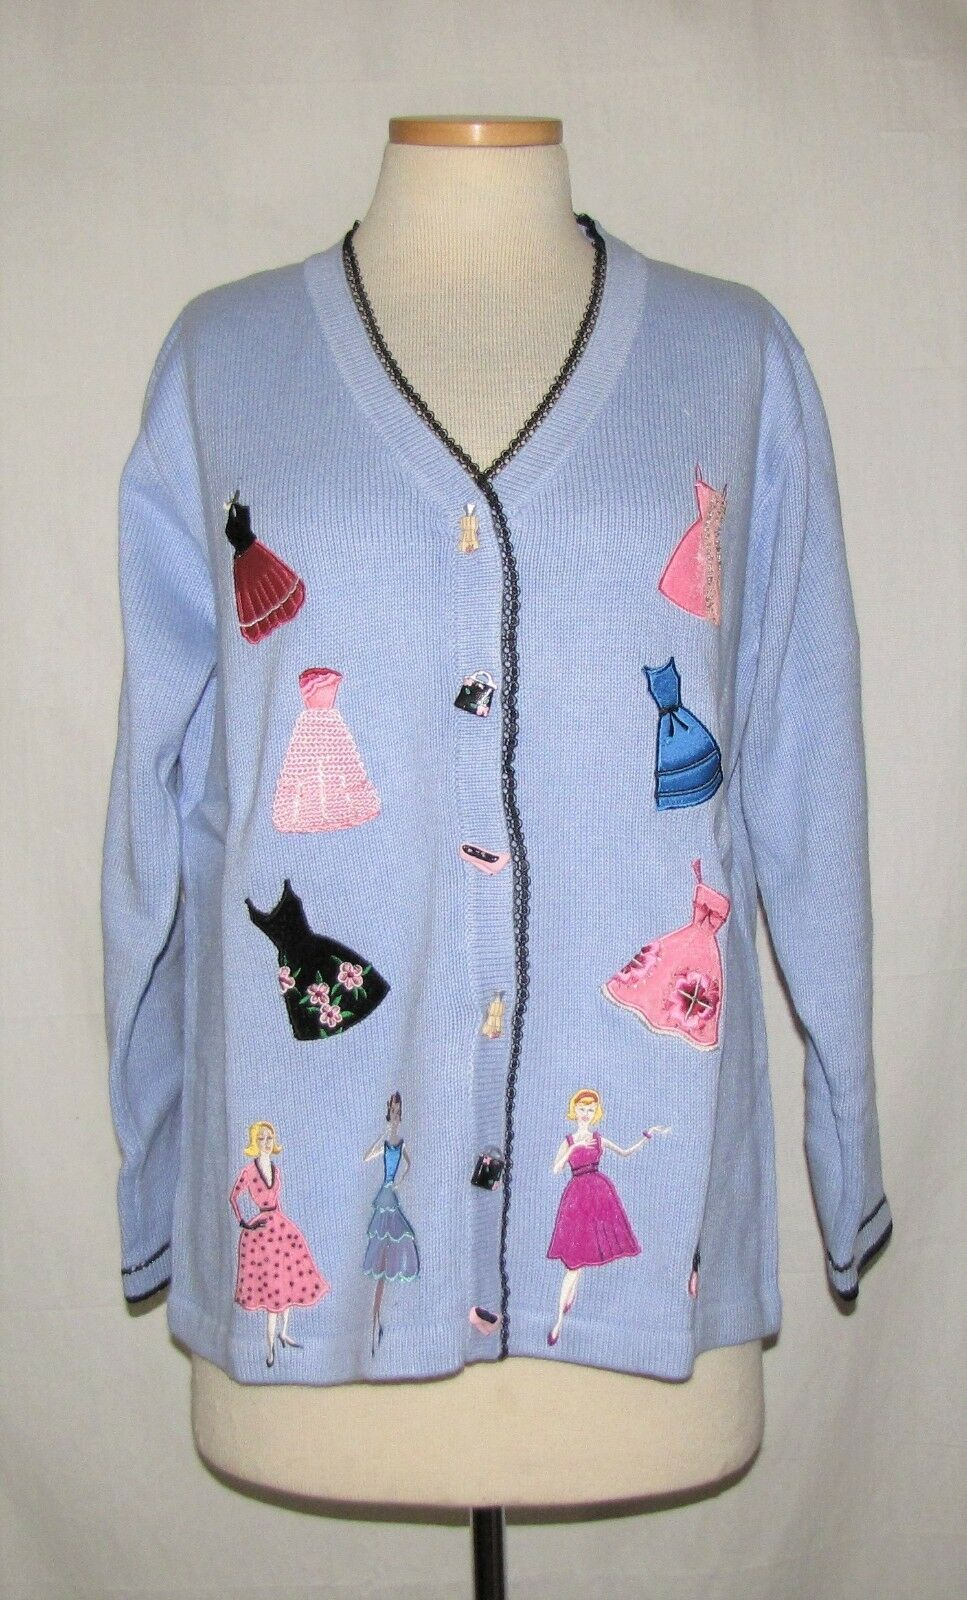 Storybook Knits 50s Fashion Show Periwinkle w Multicolor Appliques Sweater L NWT